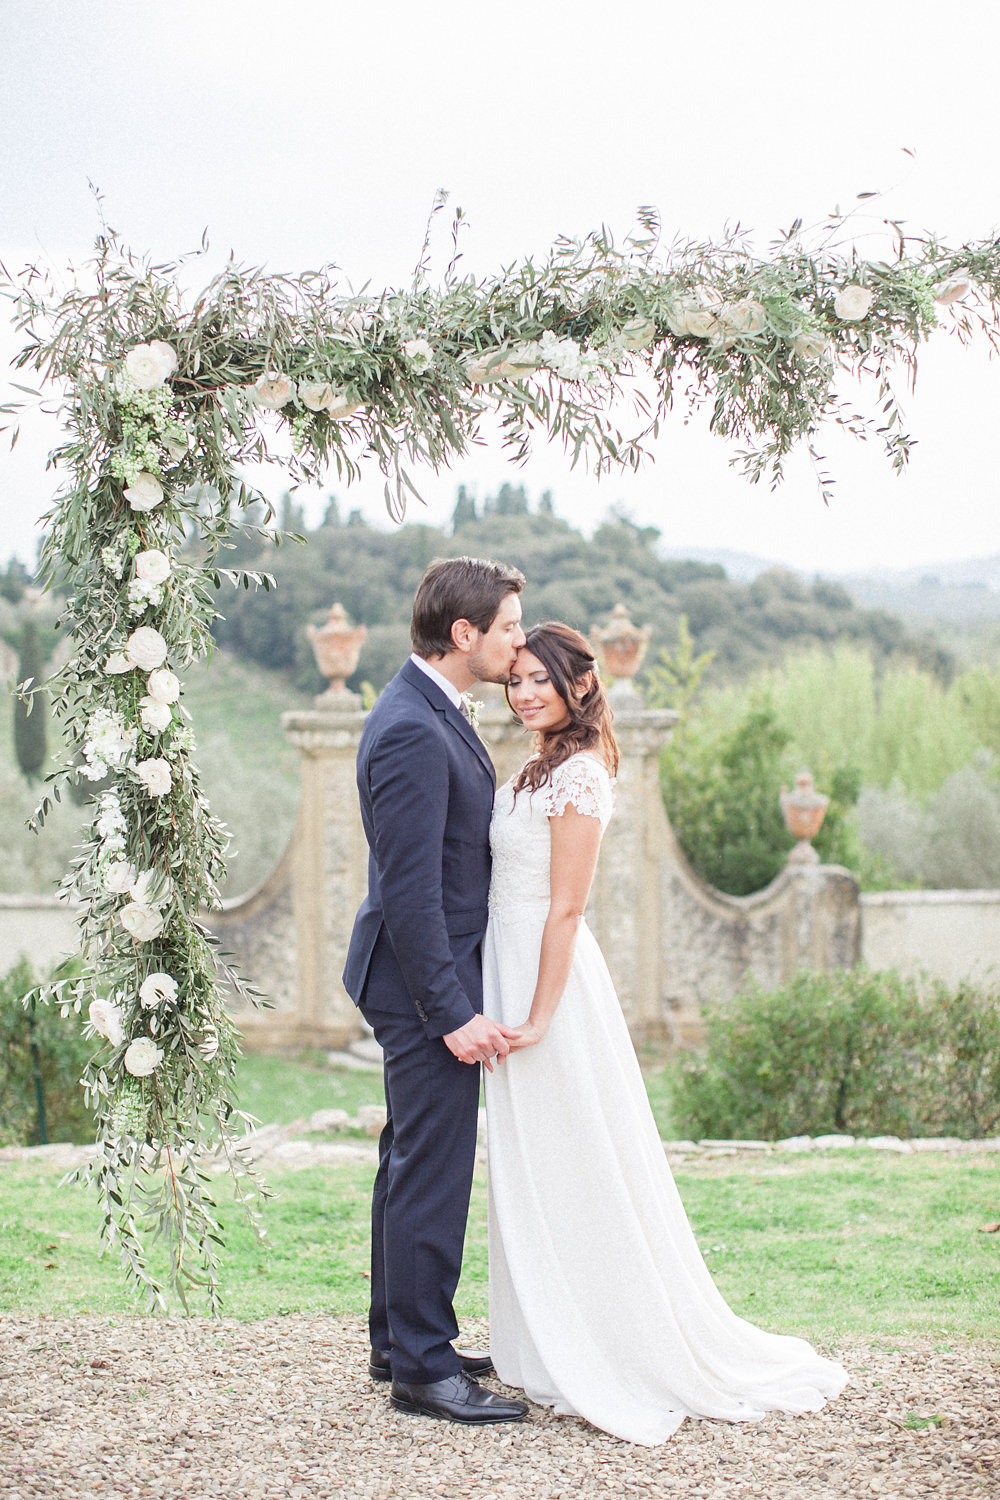 Tuscany Wedding Photographer Roberta Facchini 132